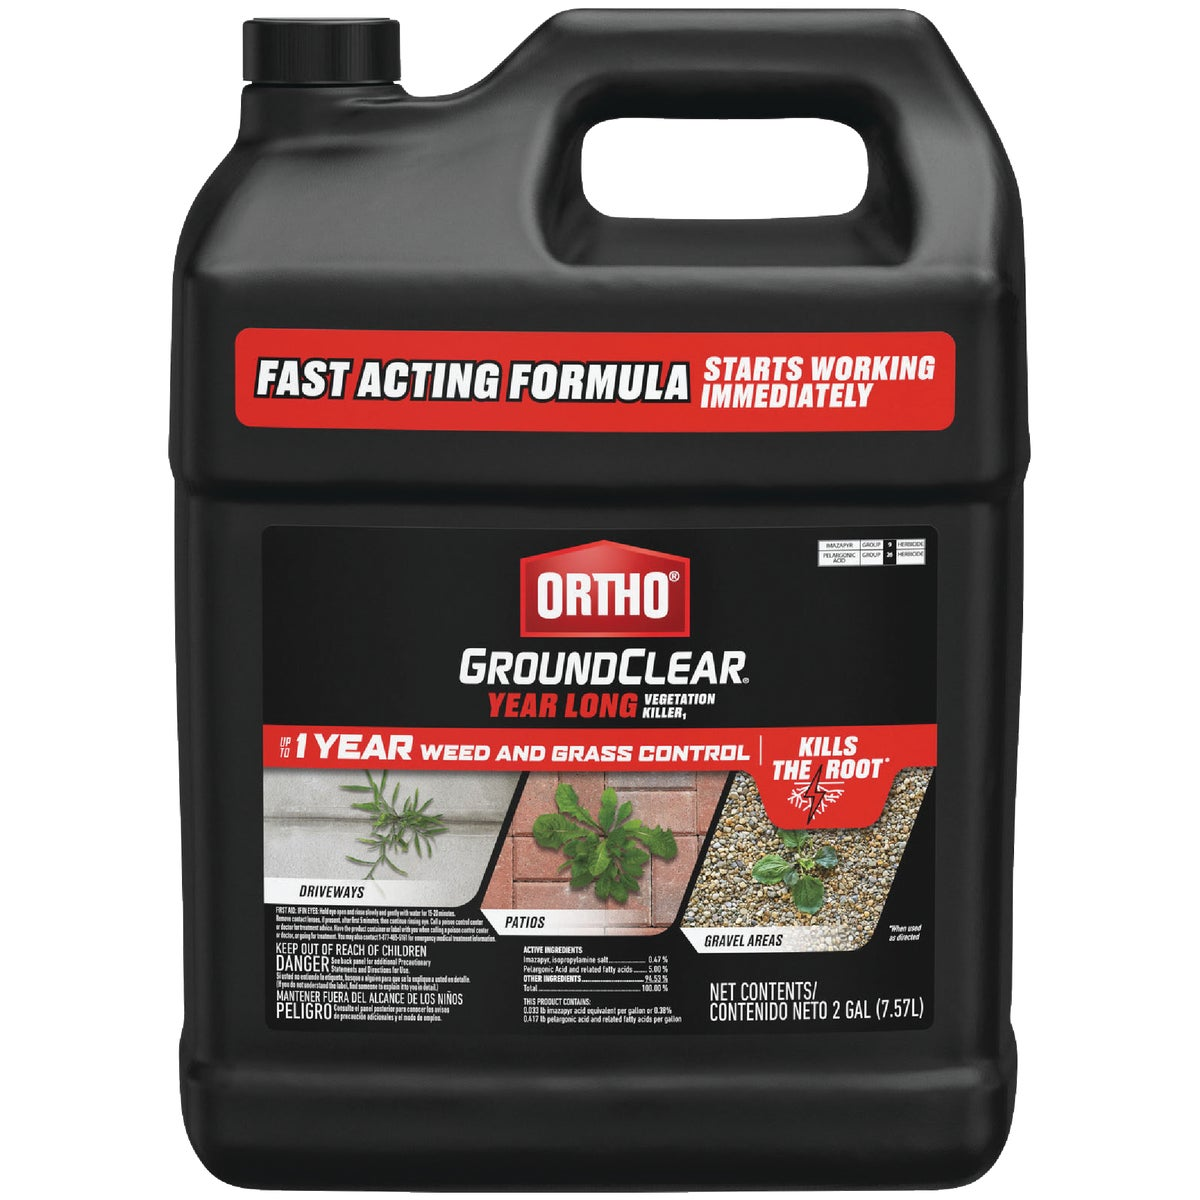 2 GAL VEGETATION KILLER